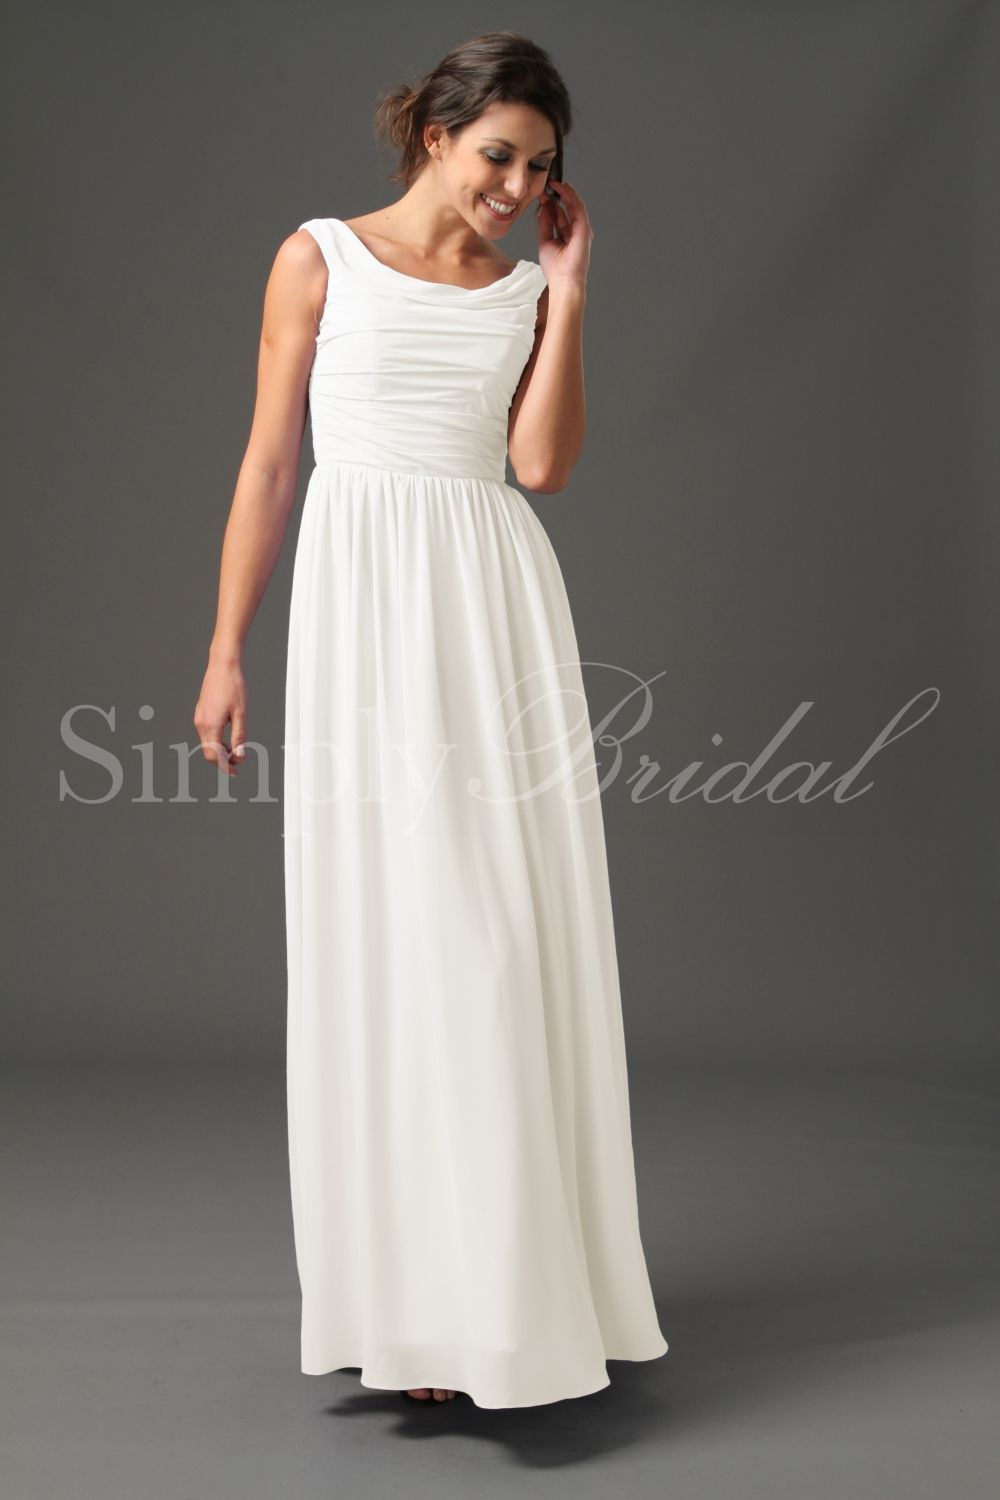 Wedding dresses for full figures  Teresa Gown  Wedding Dress  Simply Bridal  The Wedding Board